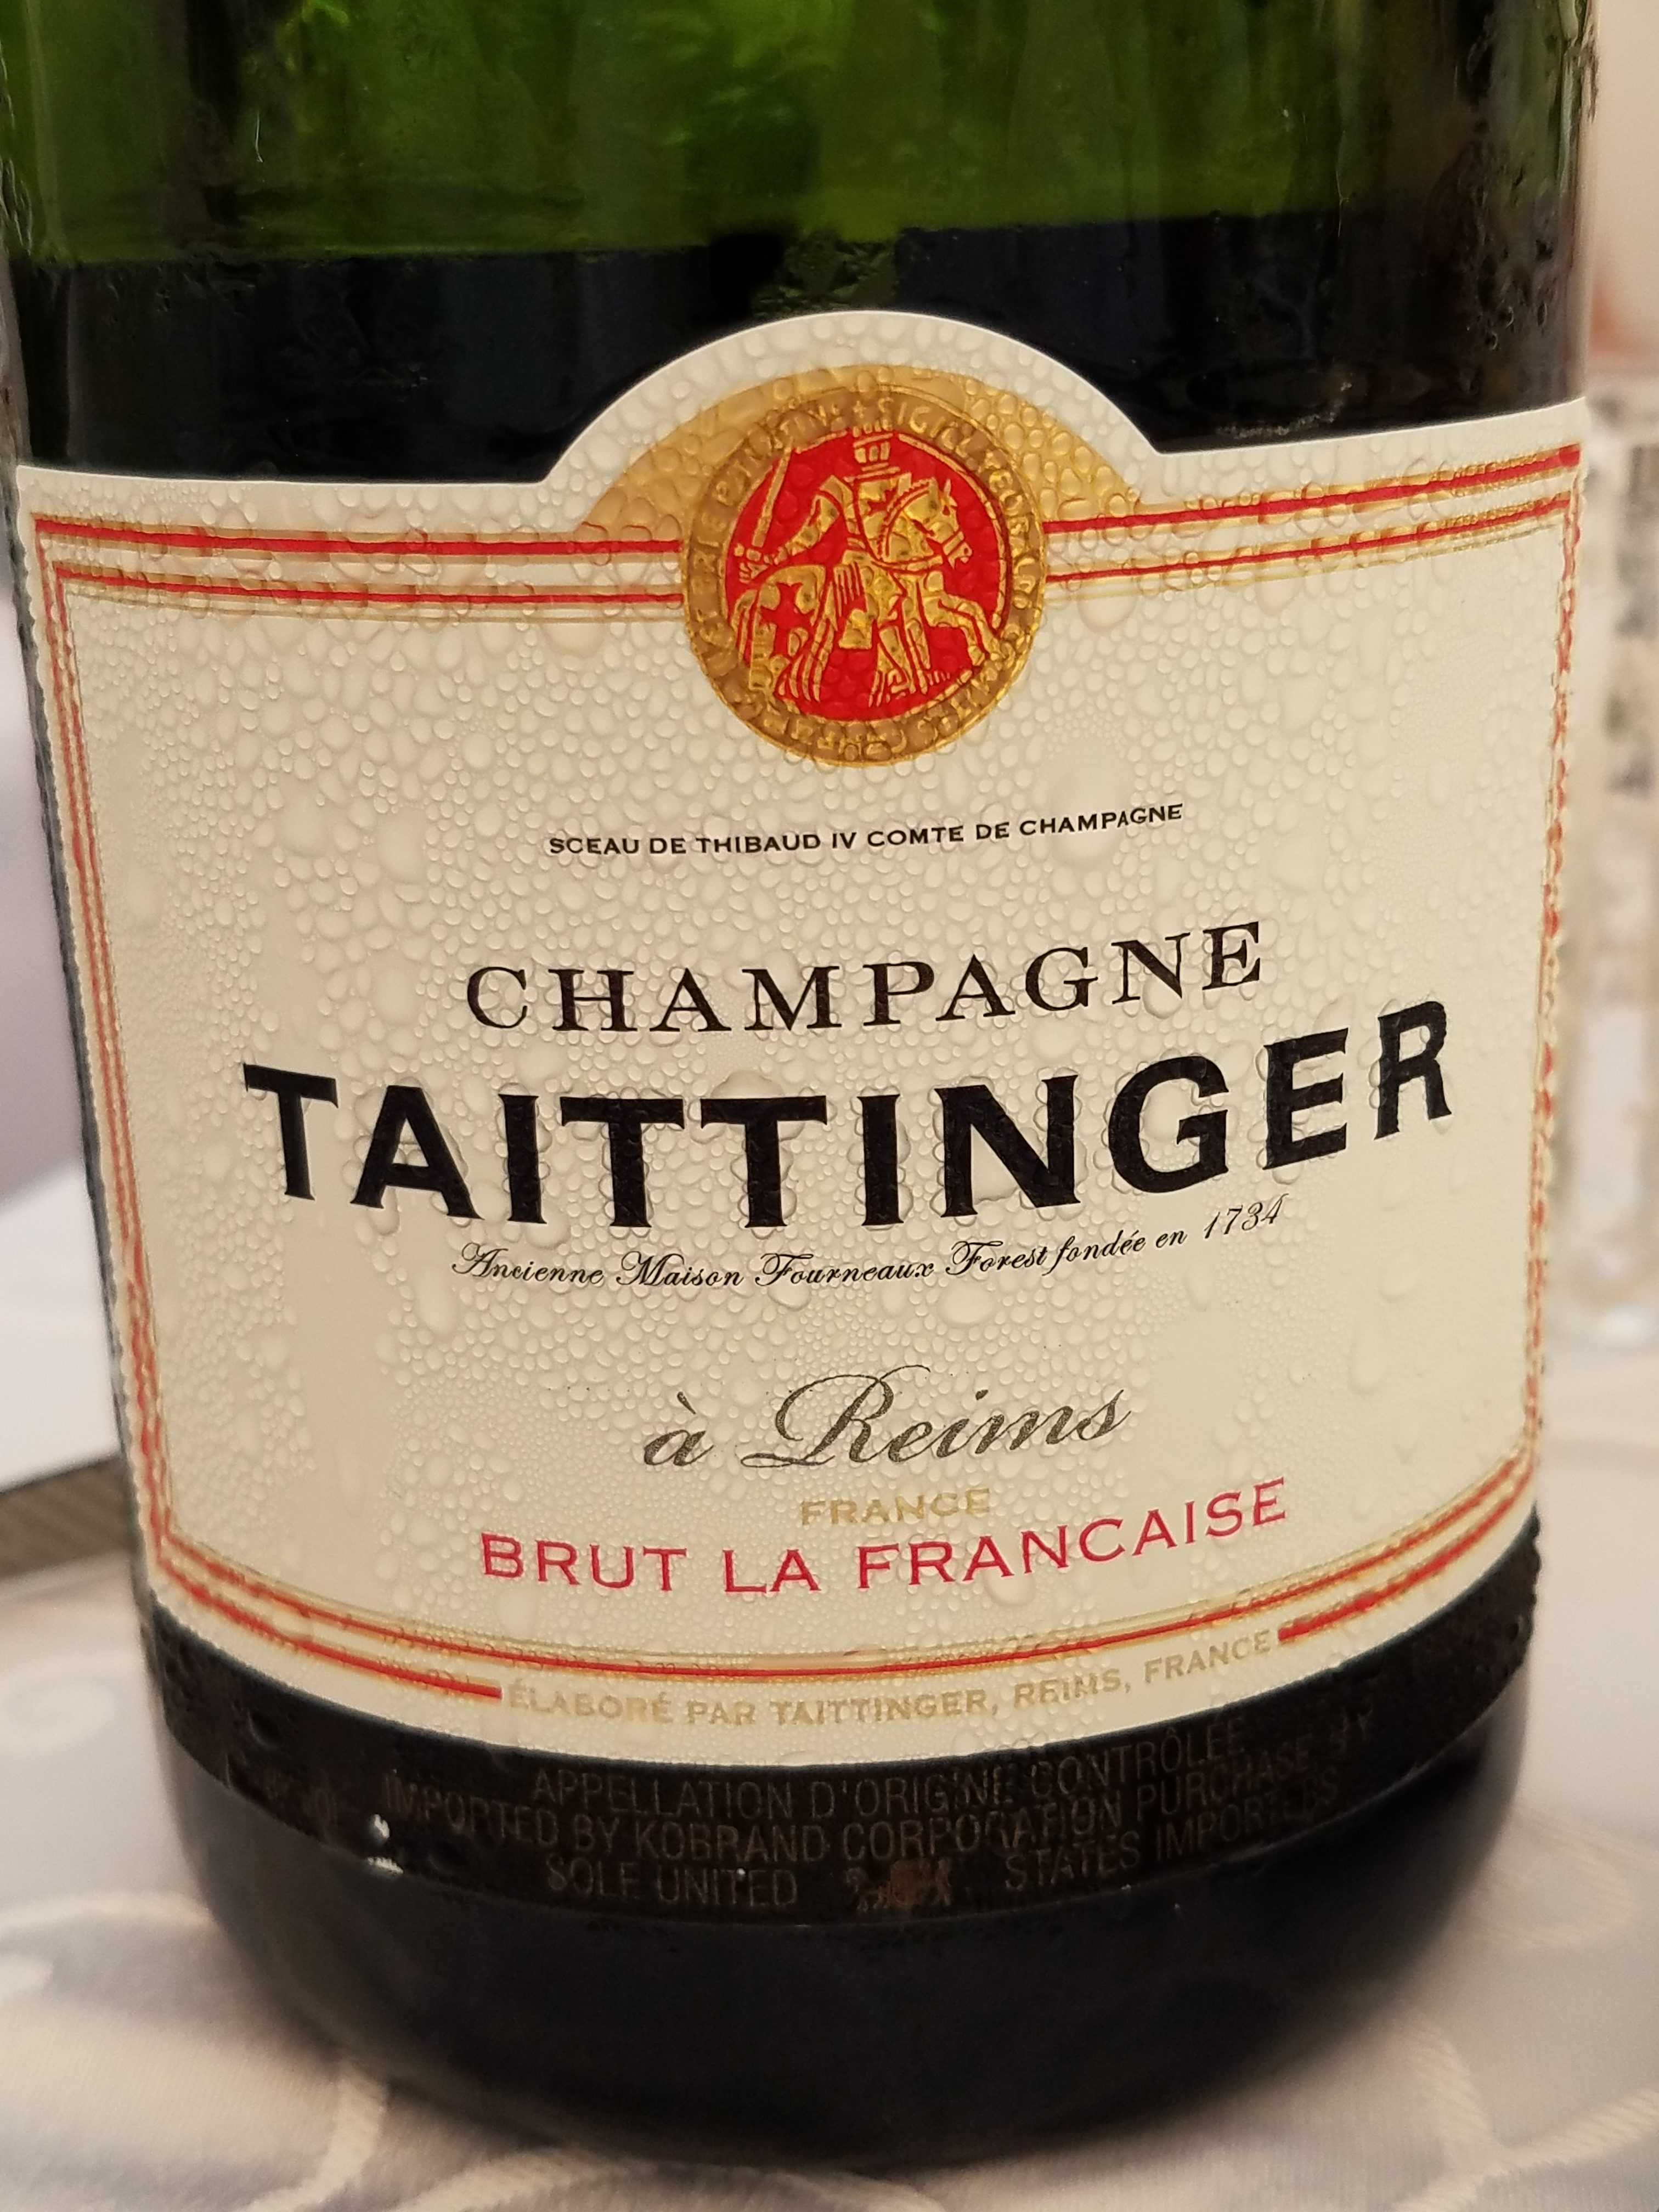 Attendees could purchase a bottle of Champagne Taittinger to compliment their meal